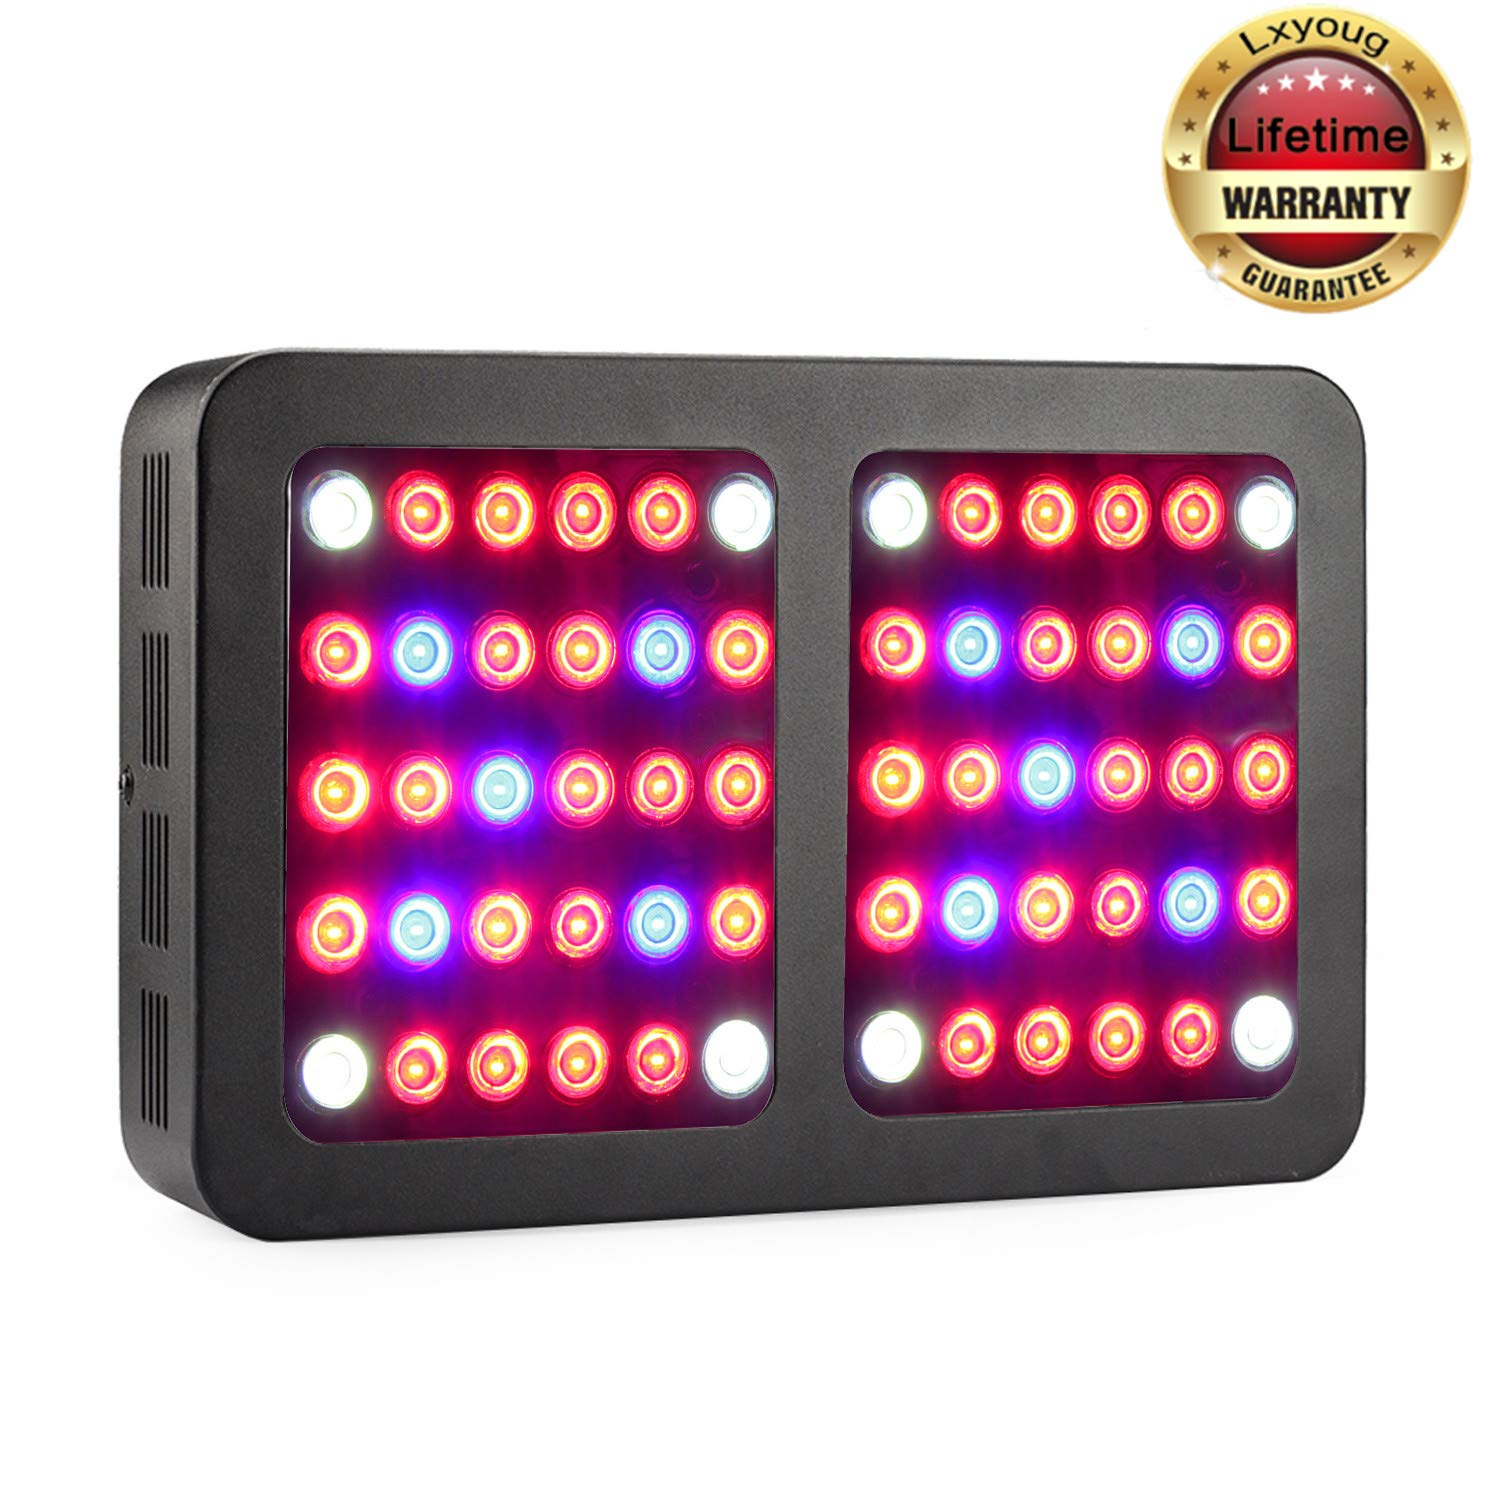 Led Grow Light, Full Spectrum Reflector 600W LED Plant Growing lamp for Indoor Plants and Flowers in Various Growth Stages, Lxyoug Plant Lights with Rope Hanger